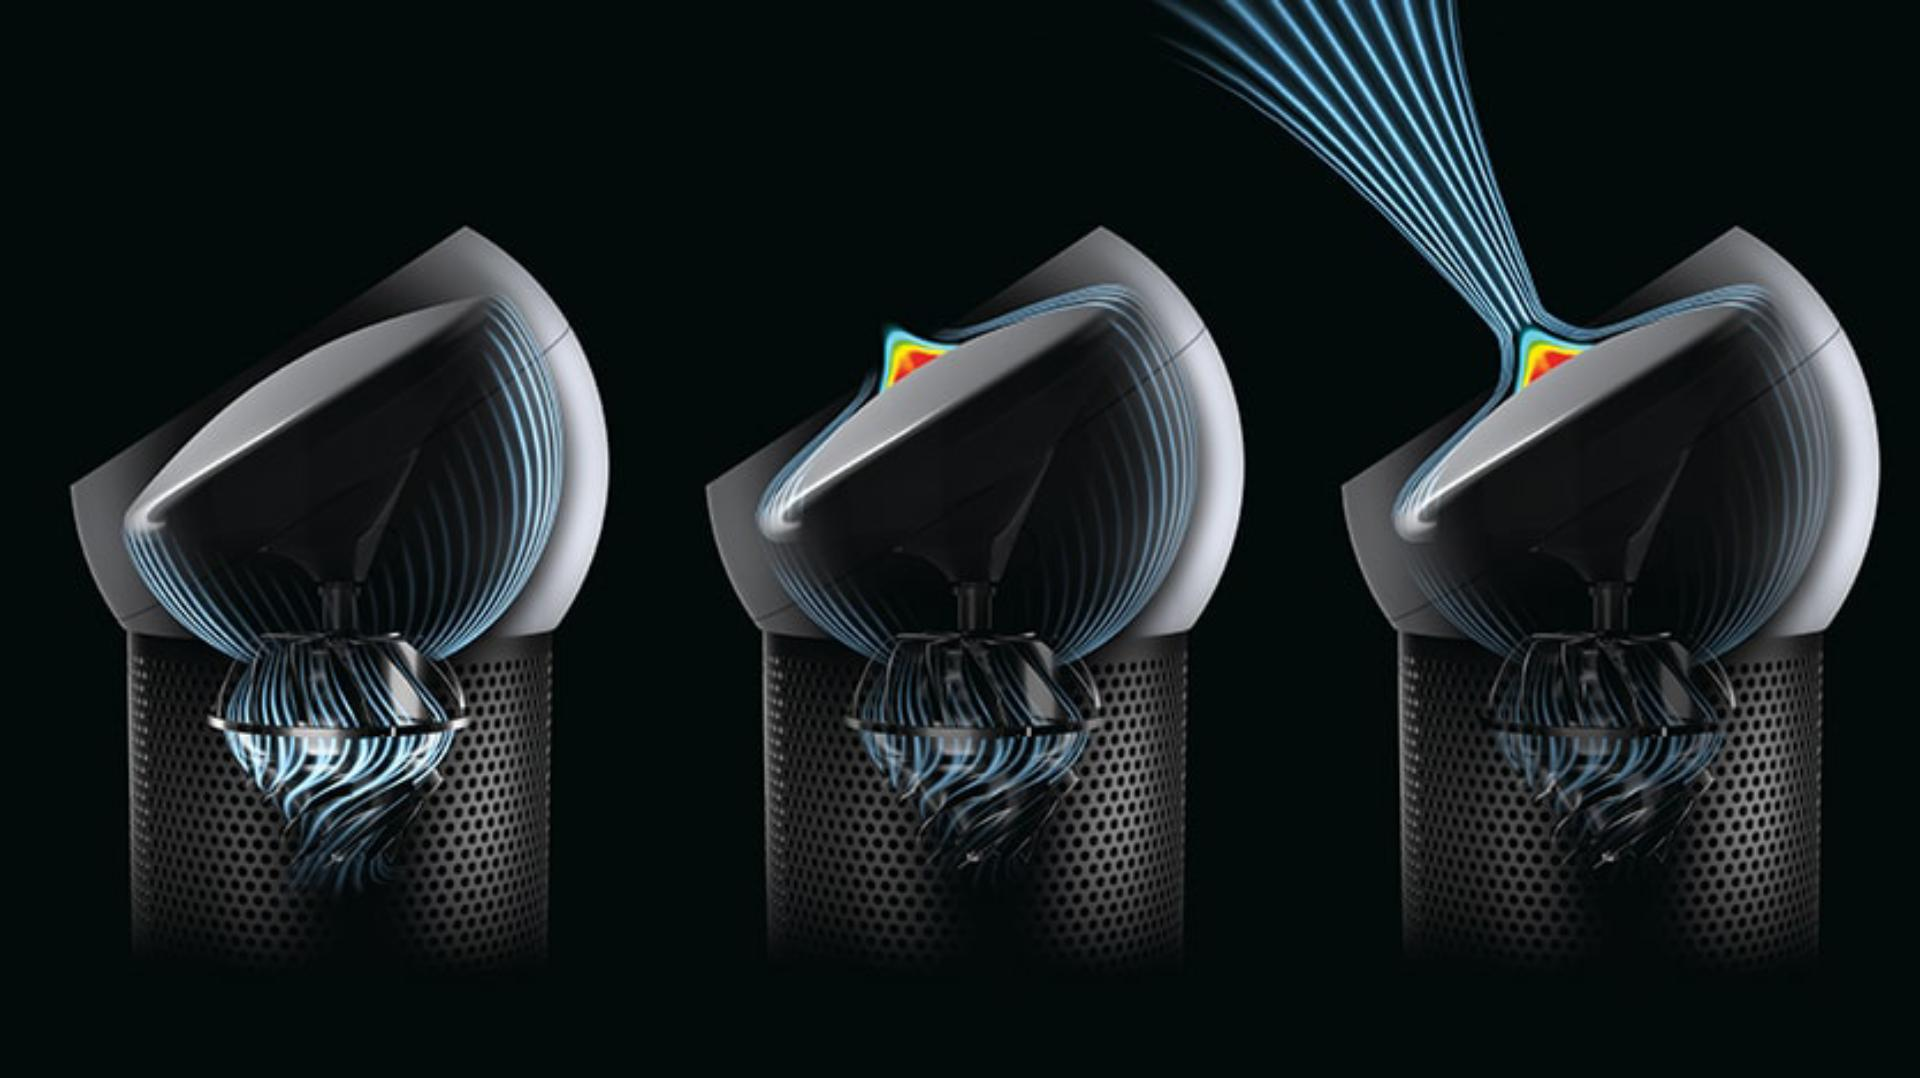 A trio of Dyson Pure Cool Me personal purifying fans